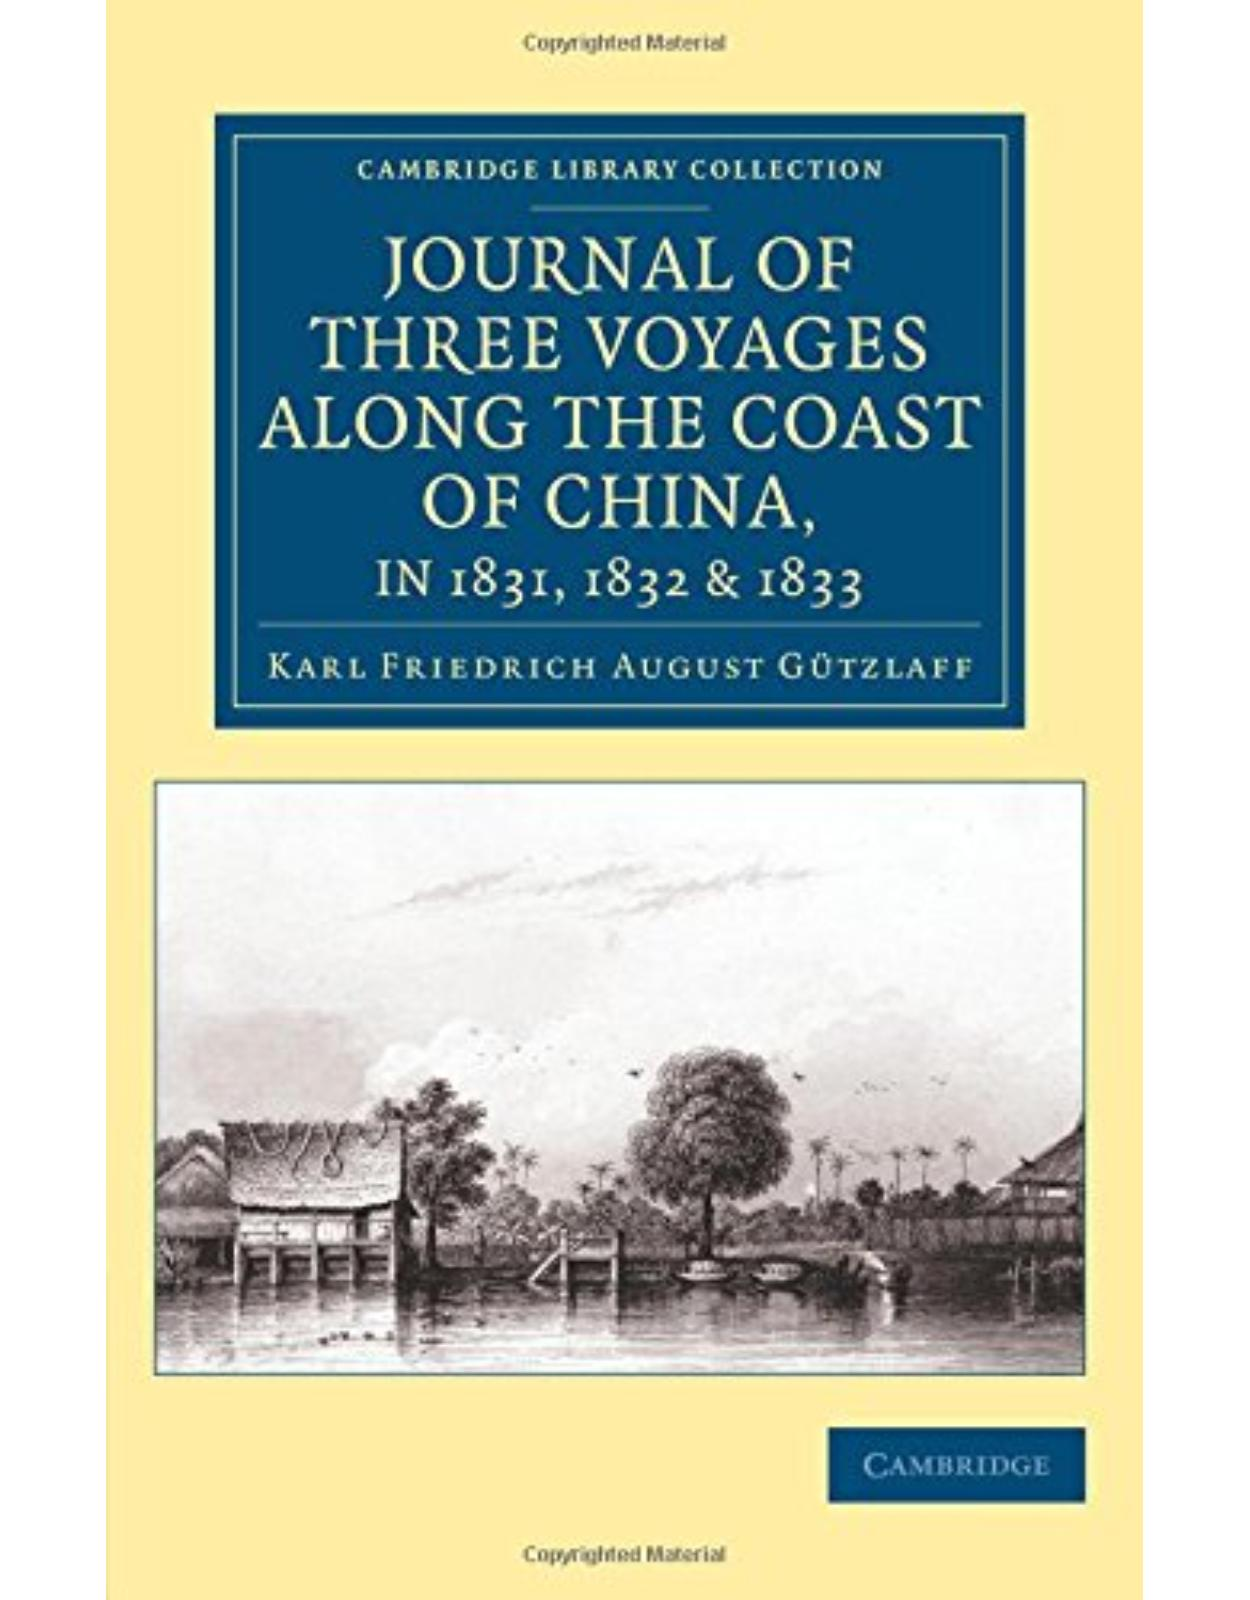 Journal of Three Voyages along the Coast of China, in 1831, 1832 and 1833: With Notices of Siam, Corea, and the Loo-Choo Islands (Cambridge Library Collection - East and South-East Asian History)